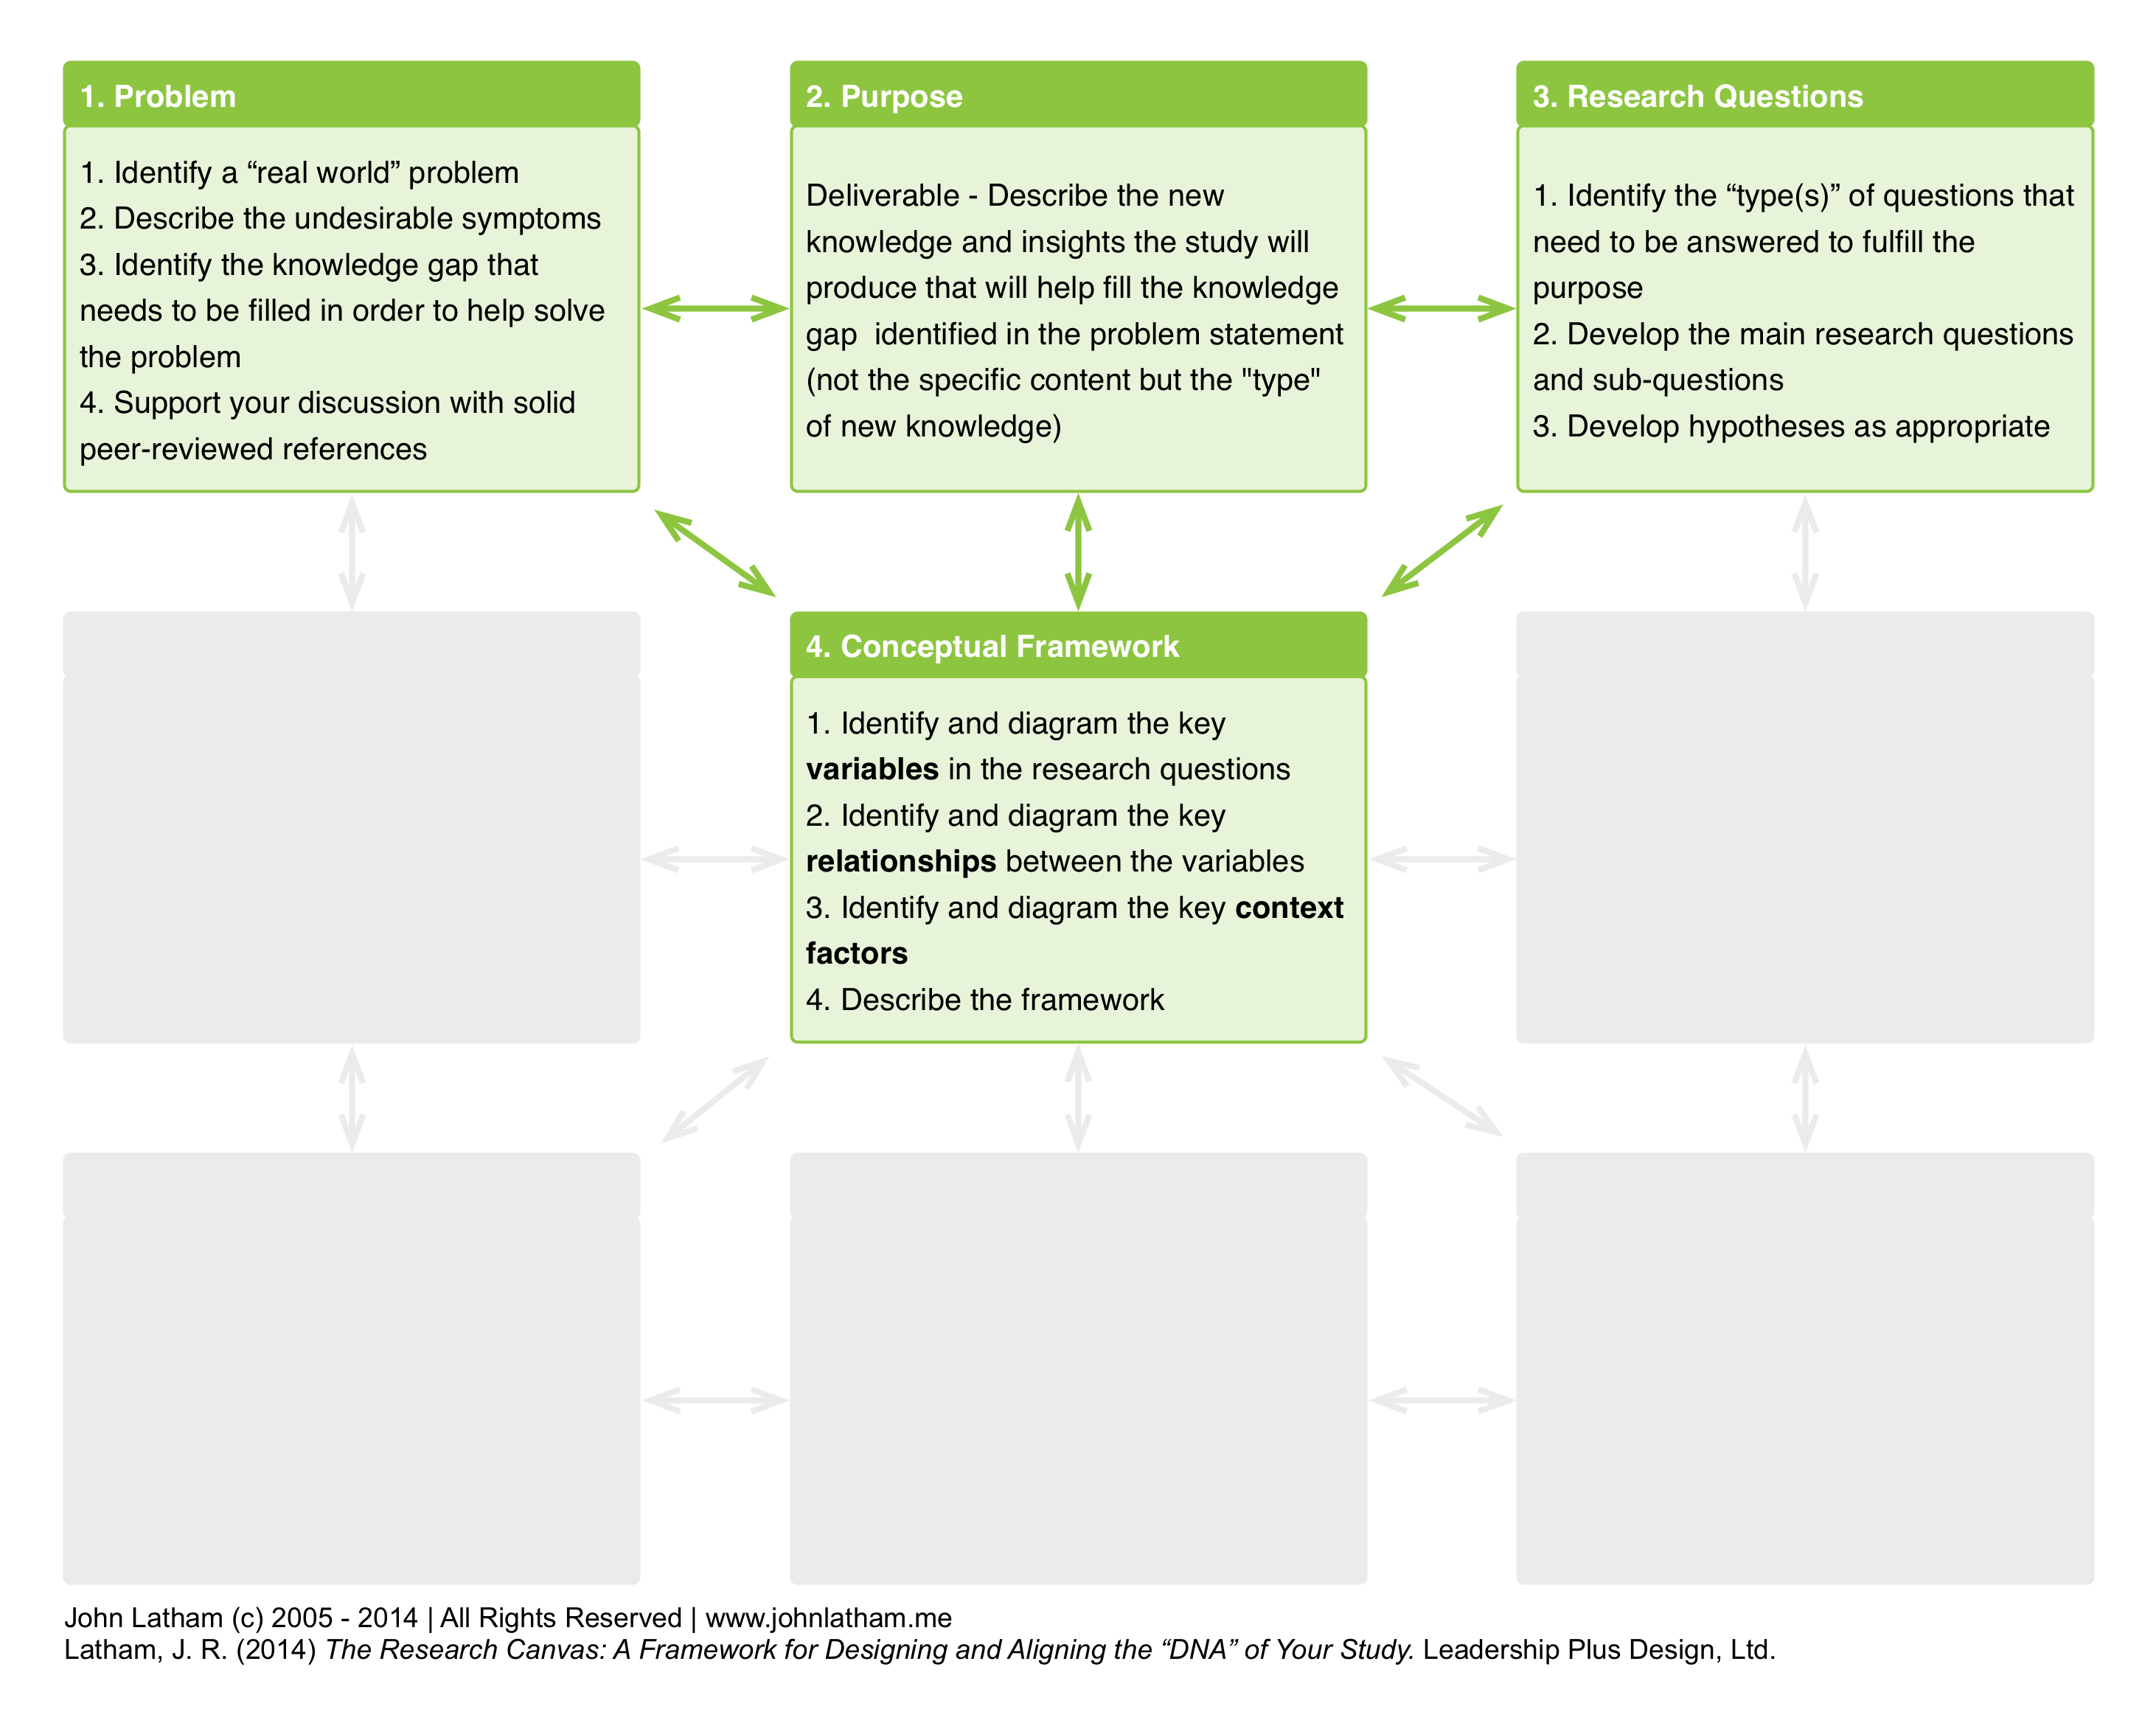 research_framework_t